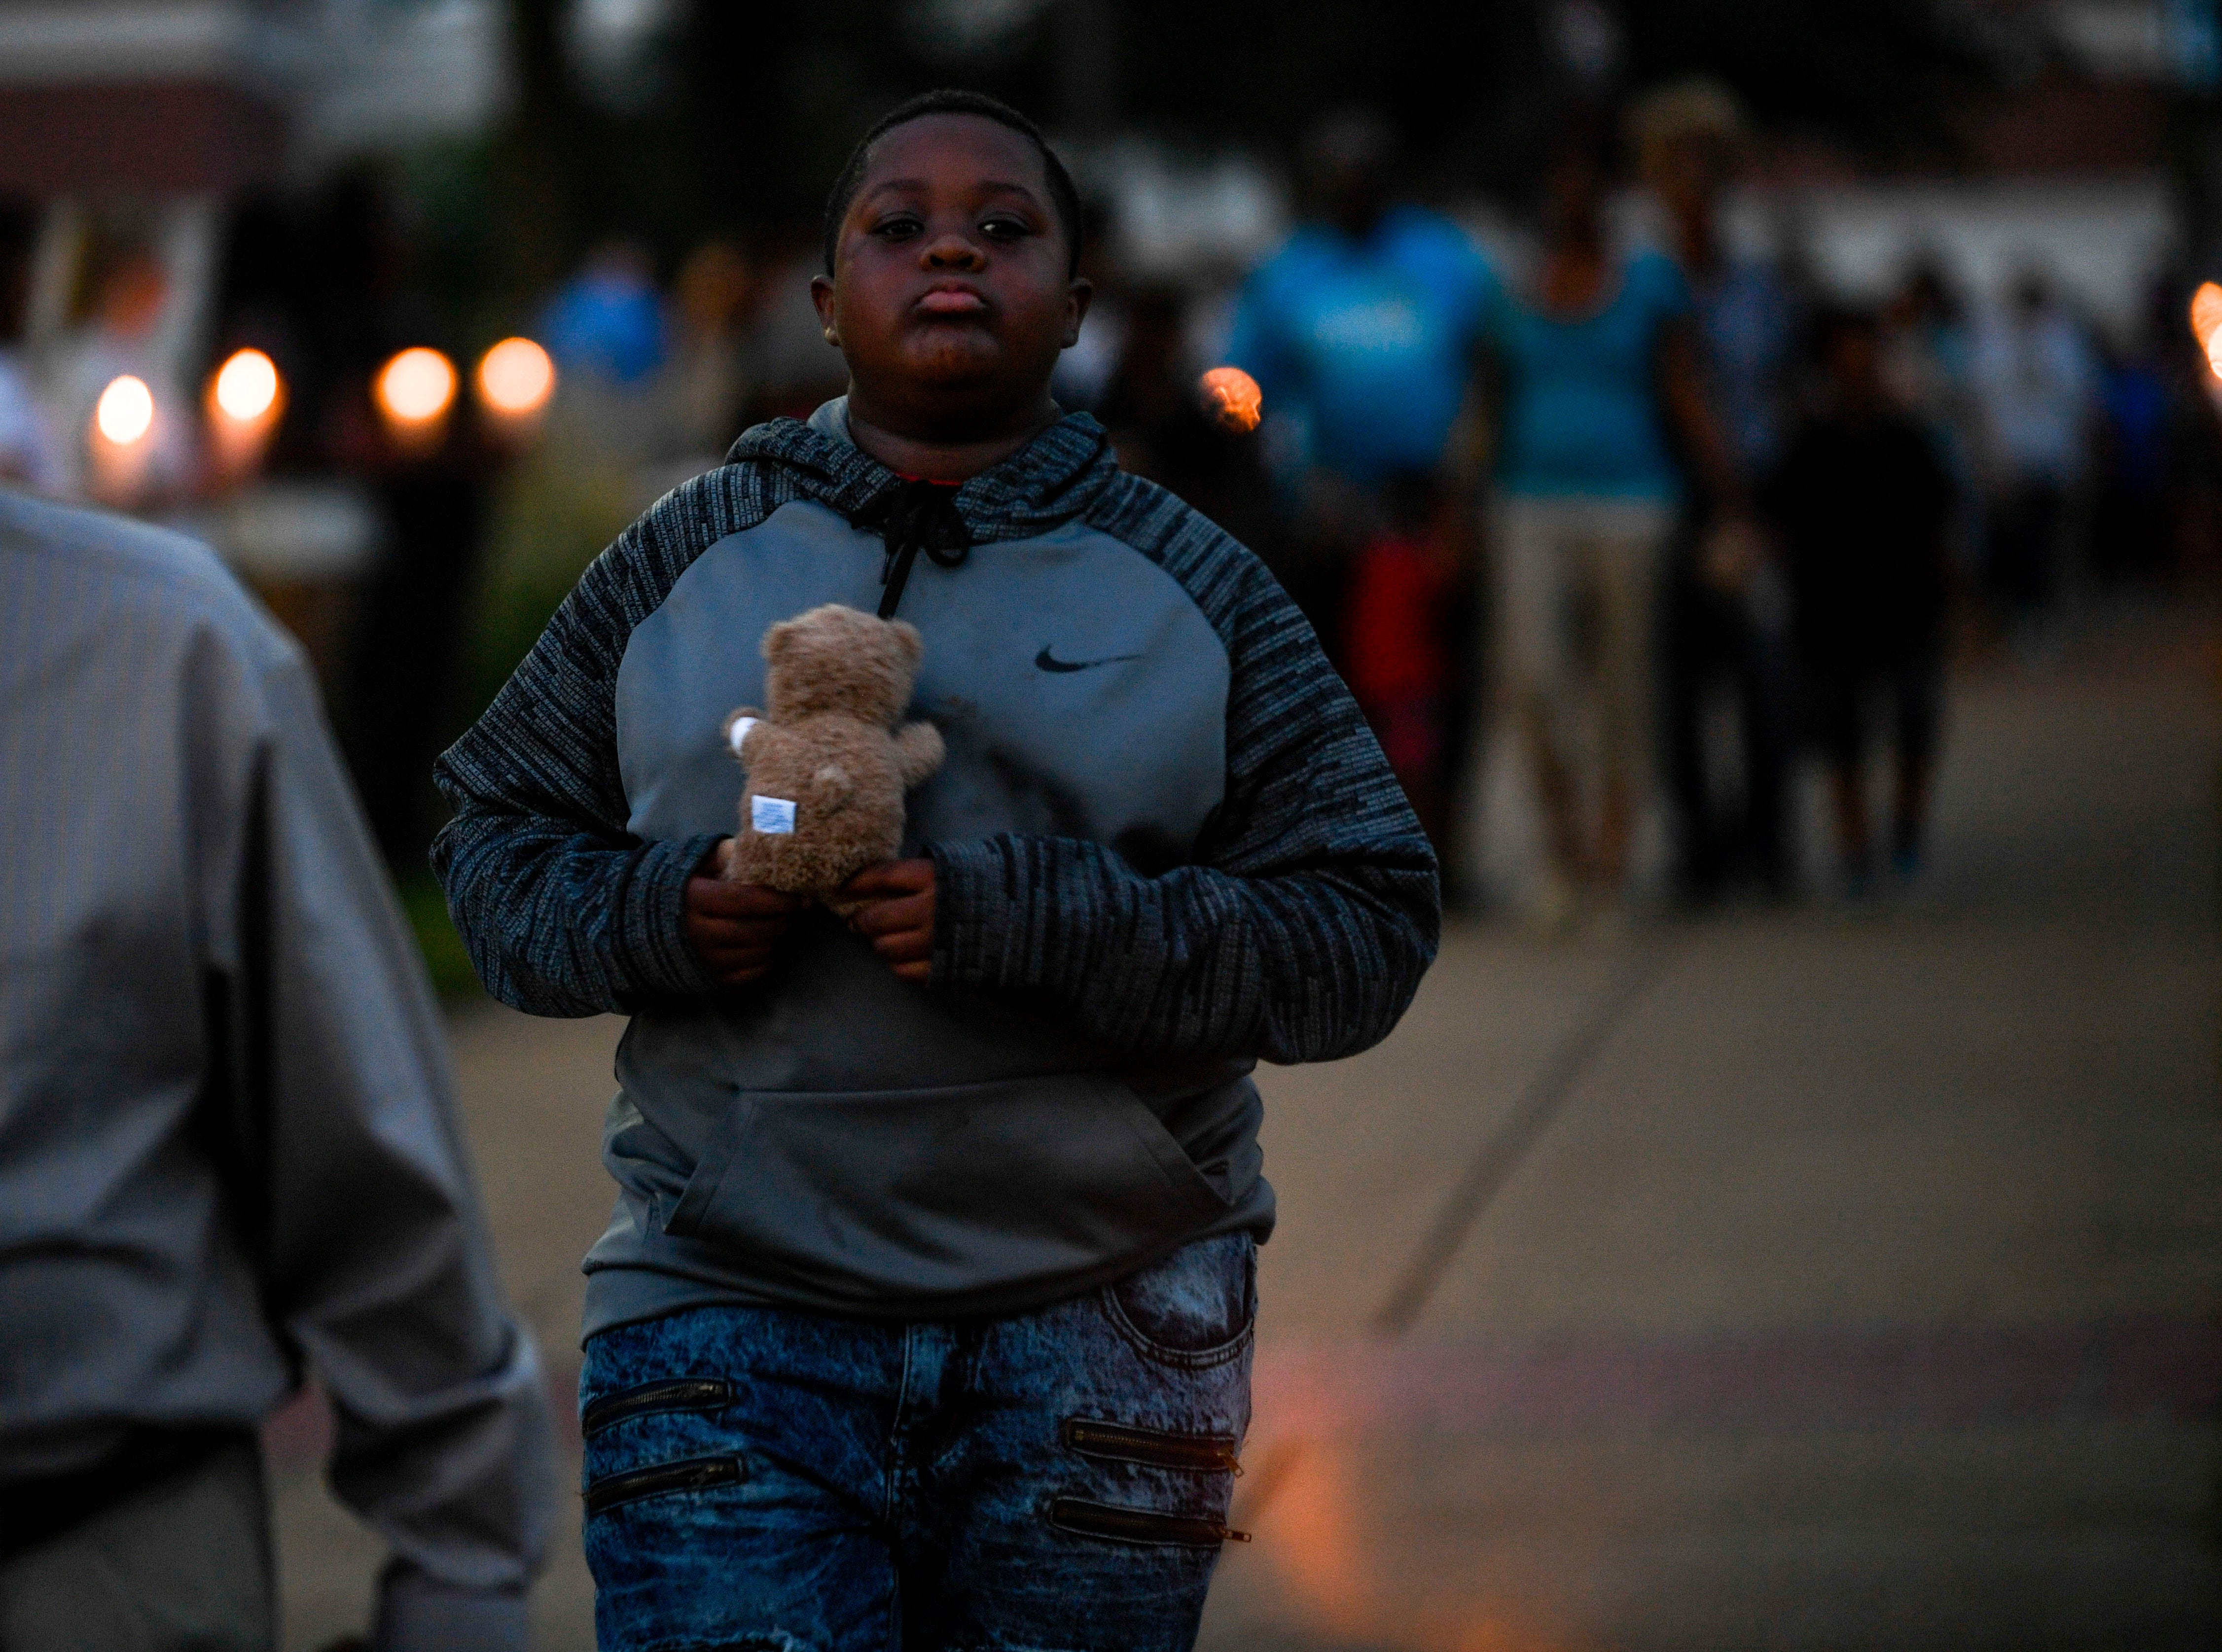 Attendees hold stuffed bears and walk between Union University students bearing candles during the annual Remember Me Walk hosted at Union University in Jackson, Tenn., on Monday, Oct. 1, 2018.